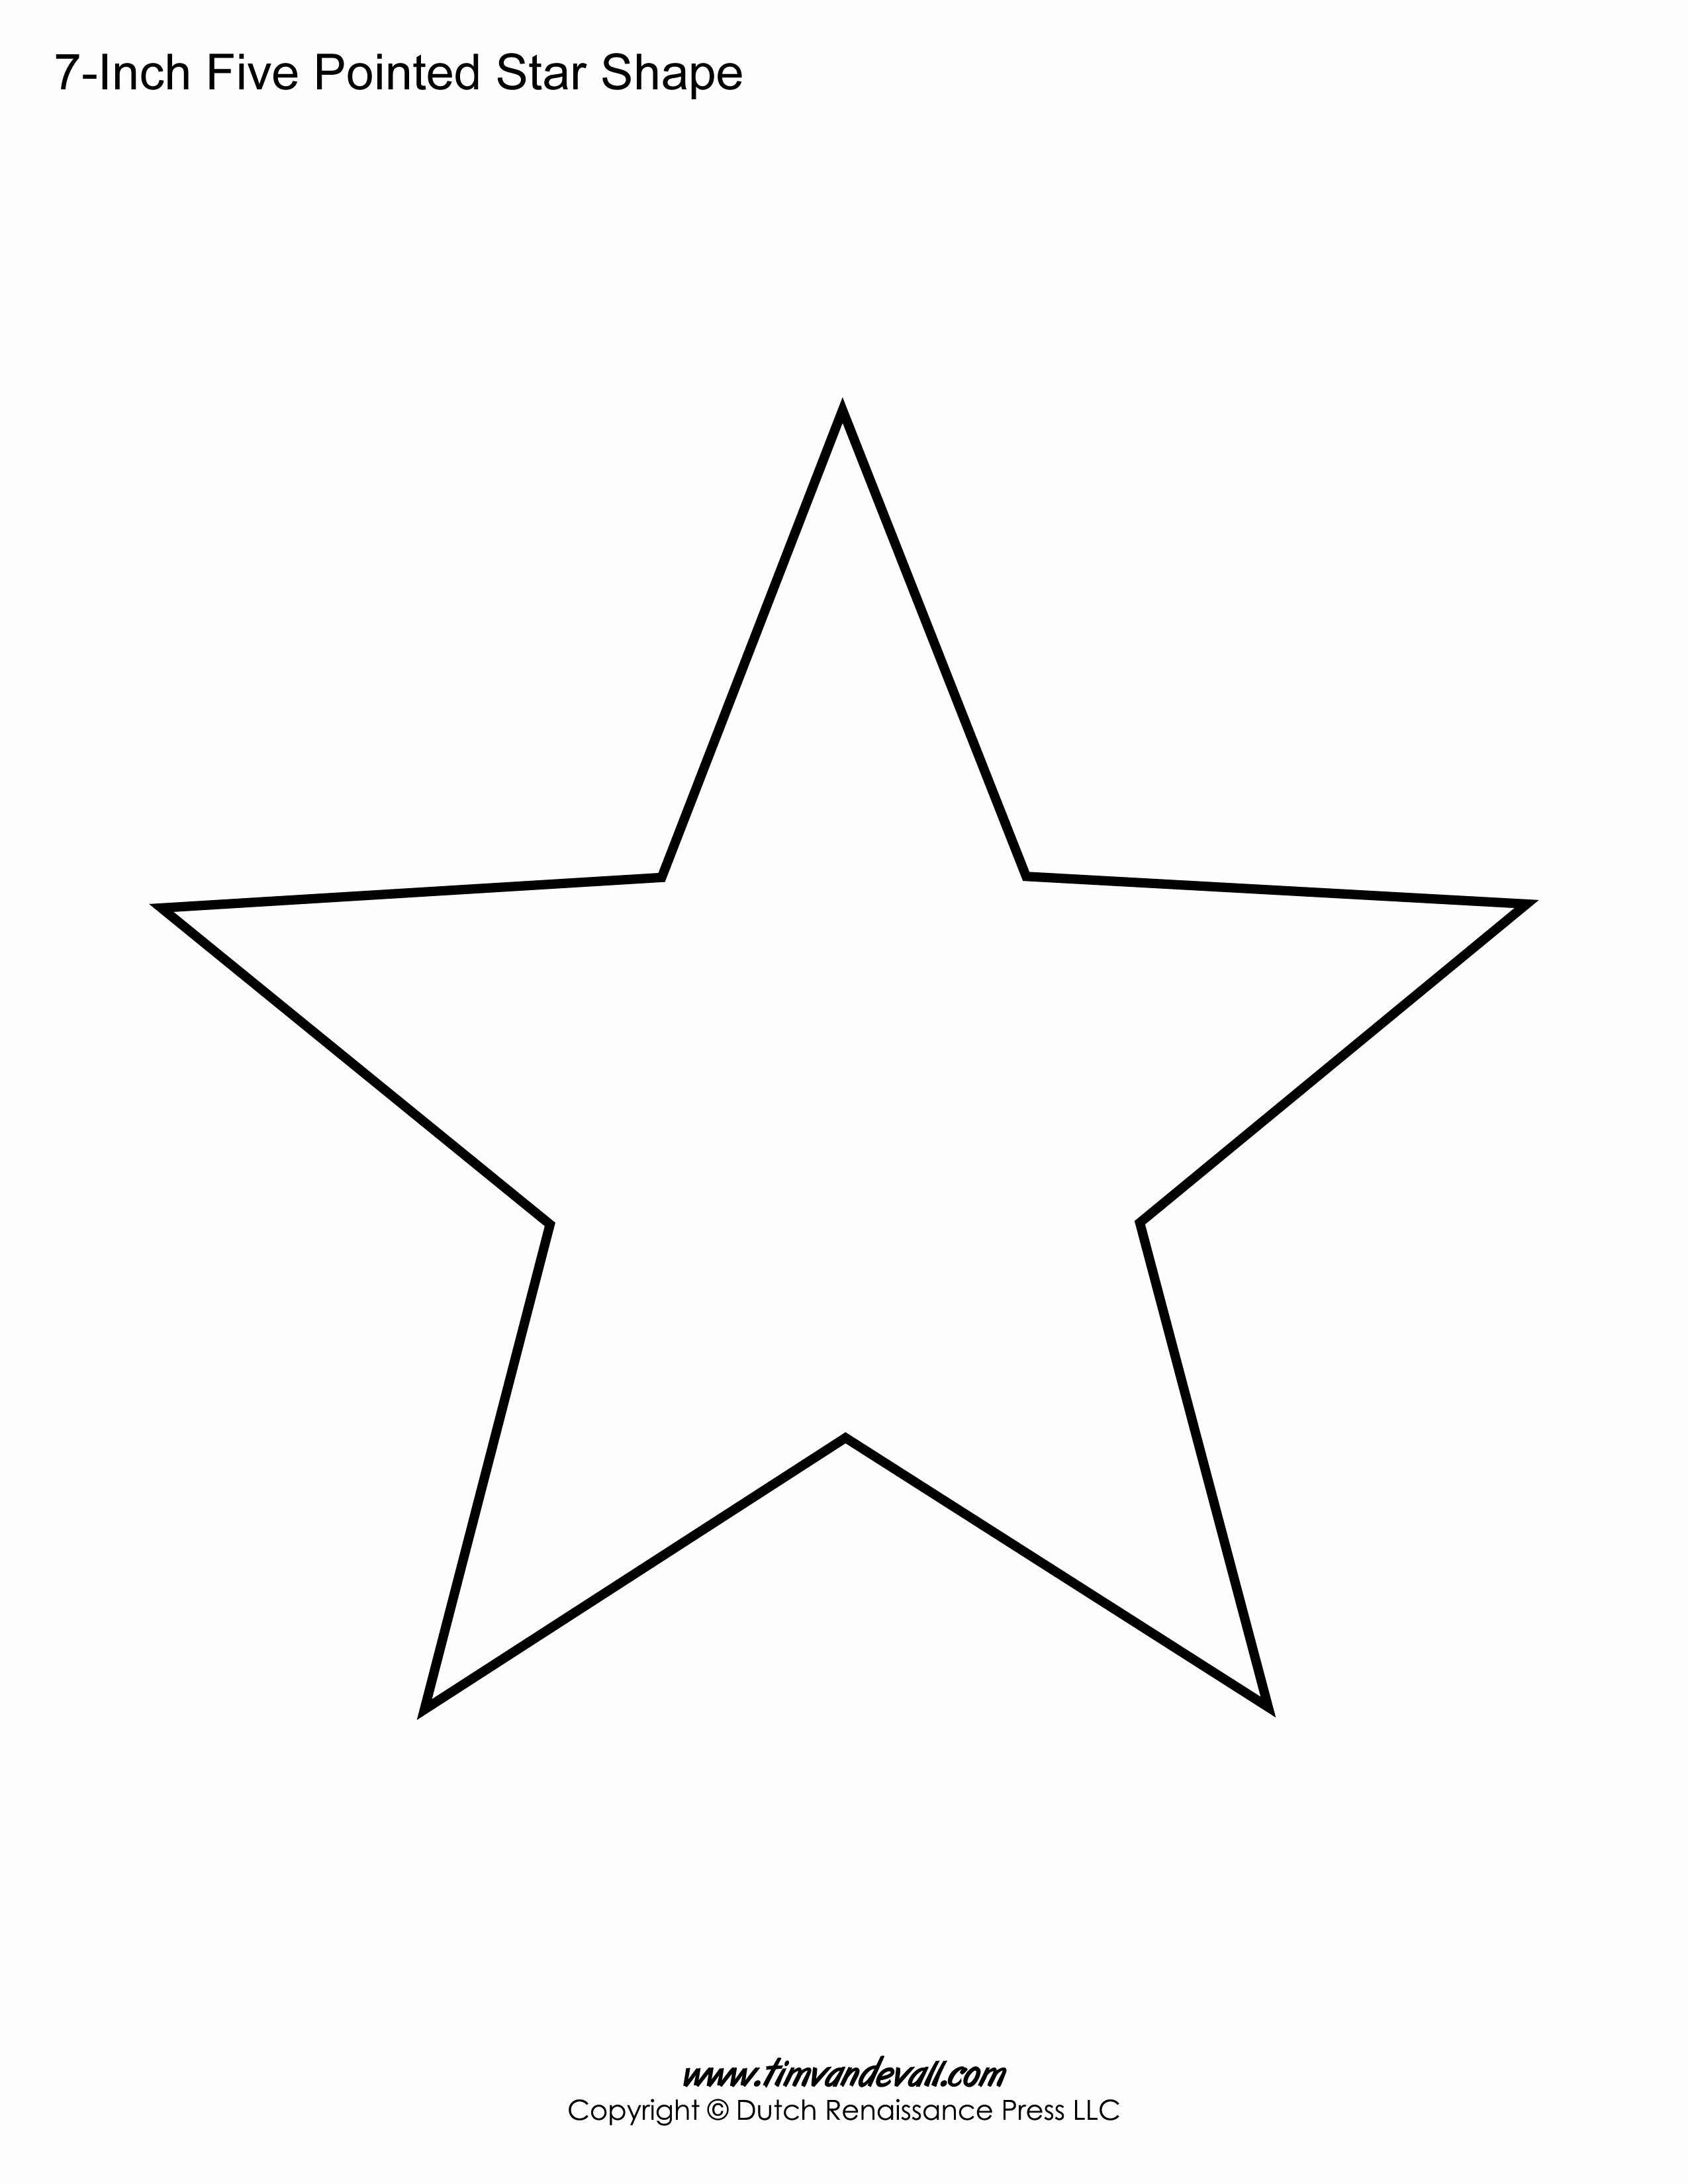 8 Point Star Template New 5 Pointed Star Crafts